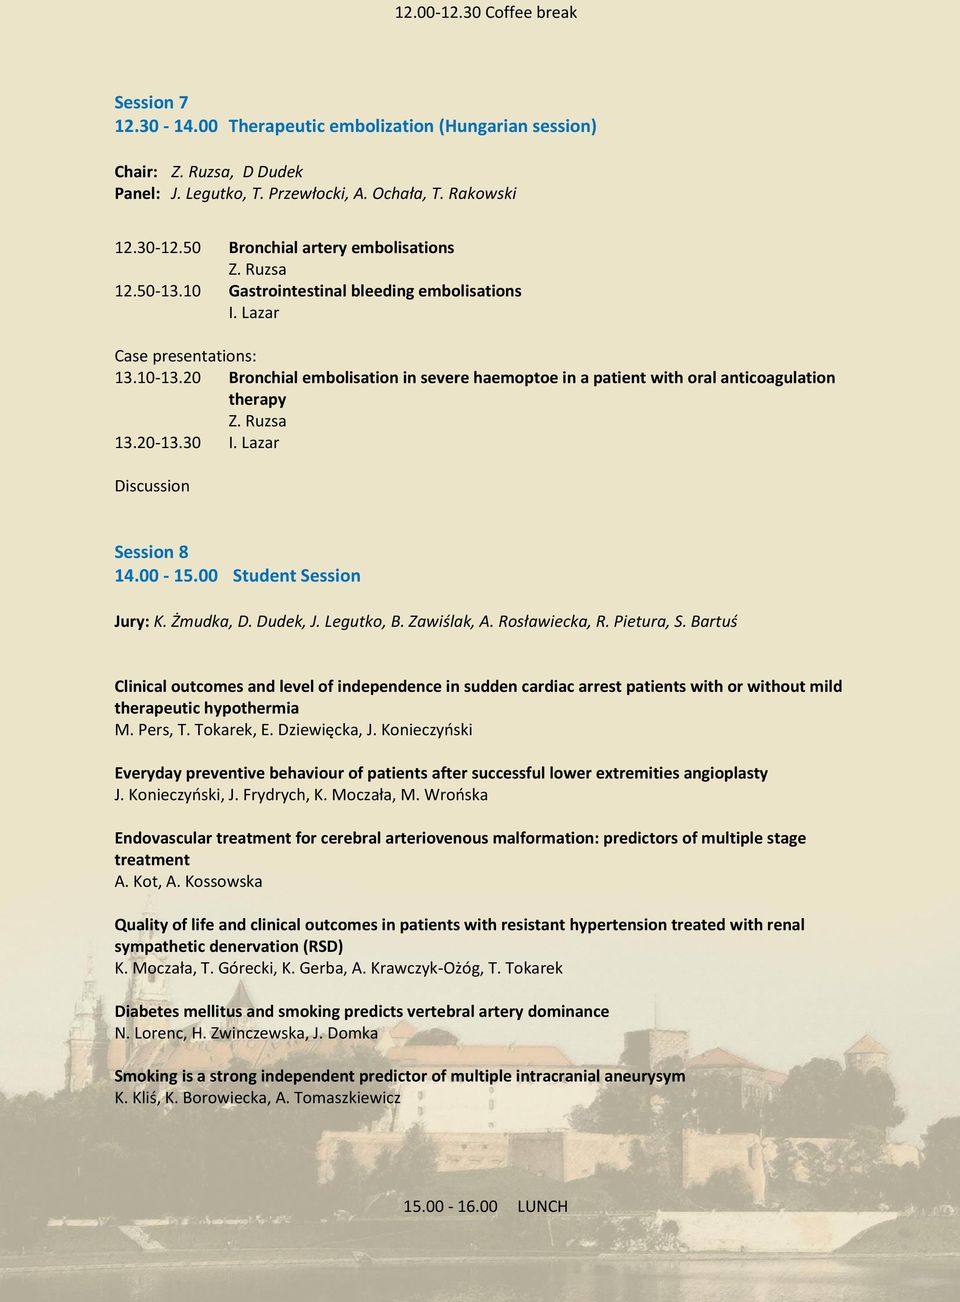 20 Bronchial embolisation in severe haemoptoe in a patient with oral anticoagulation therapy Z. Ruzsa 13.20-13.30 I. Lazar Discussion Session 8 14.00-15.00 Student Session Jury: K. Żmudka, D.